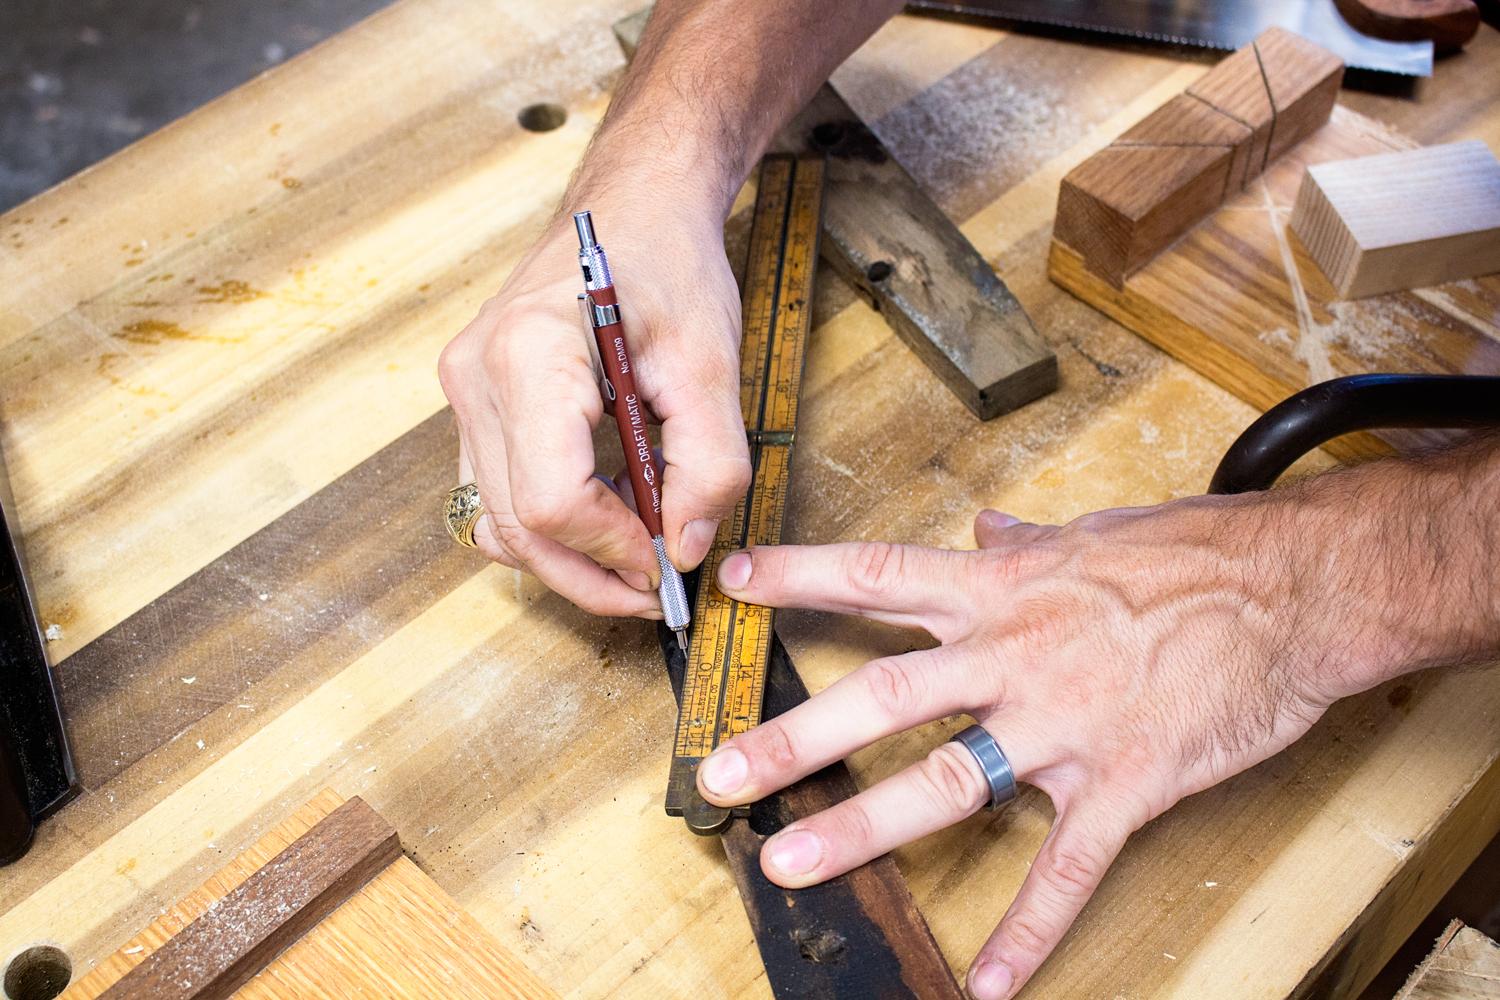 """Marking the cut line using my Stanley Rule & Level Co. Folding rule as a straightedge. I try to go about 1/8"""" past the burned spots on the wood. I don't want any charred wood along my glueline. It wouldn't have the structural integrity needed."""